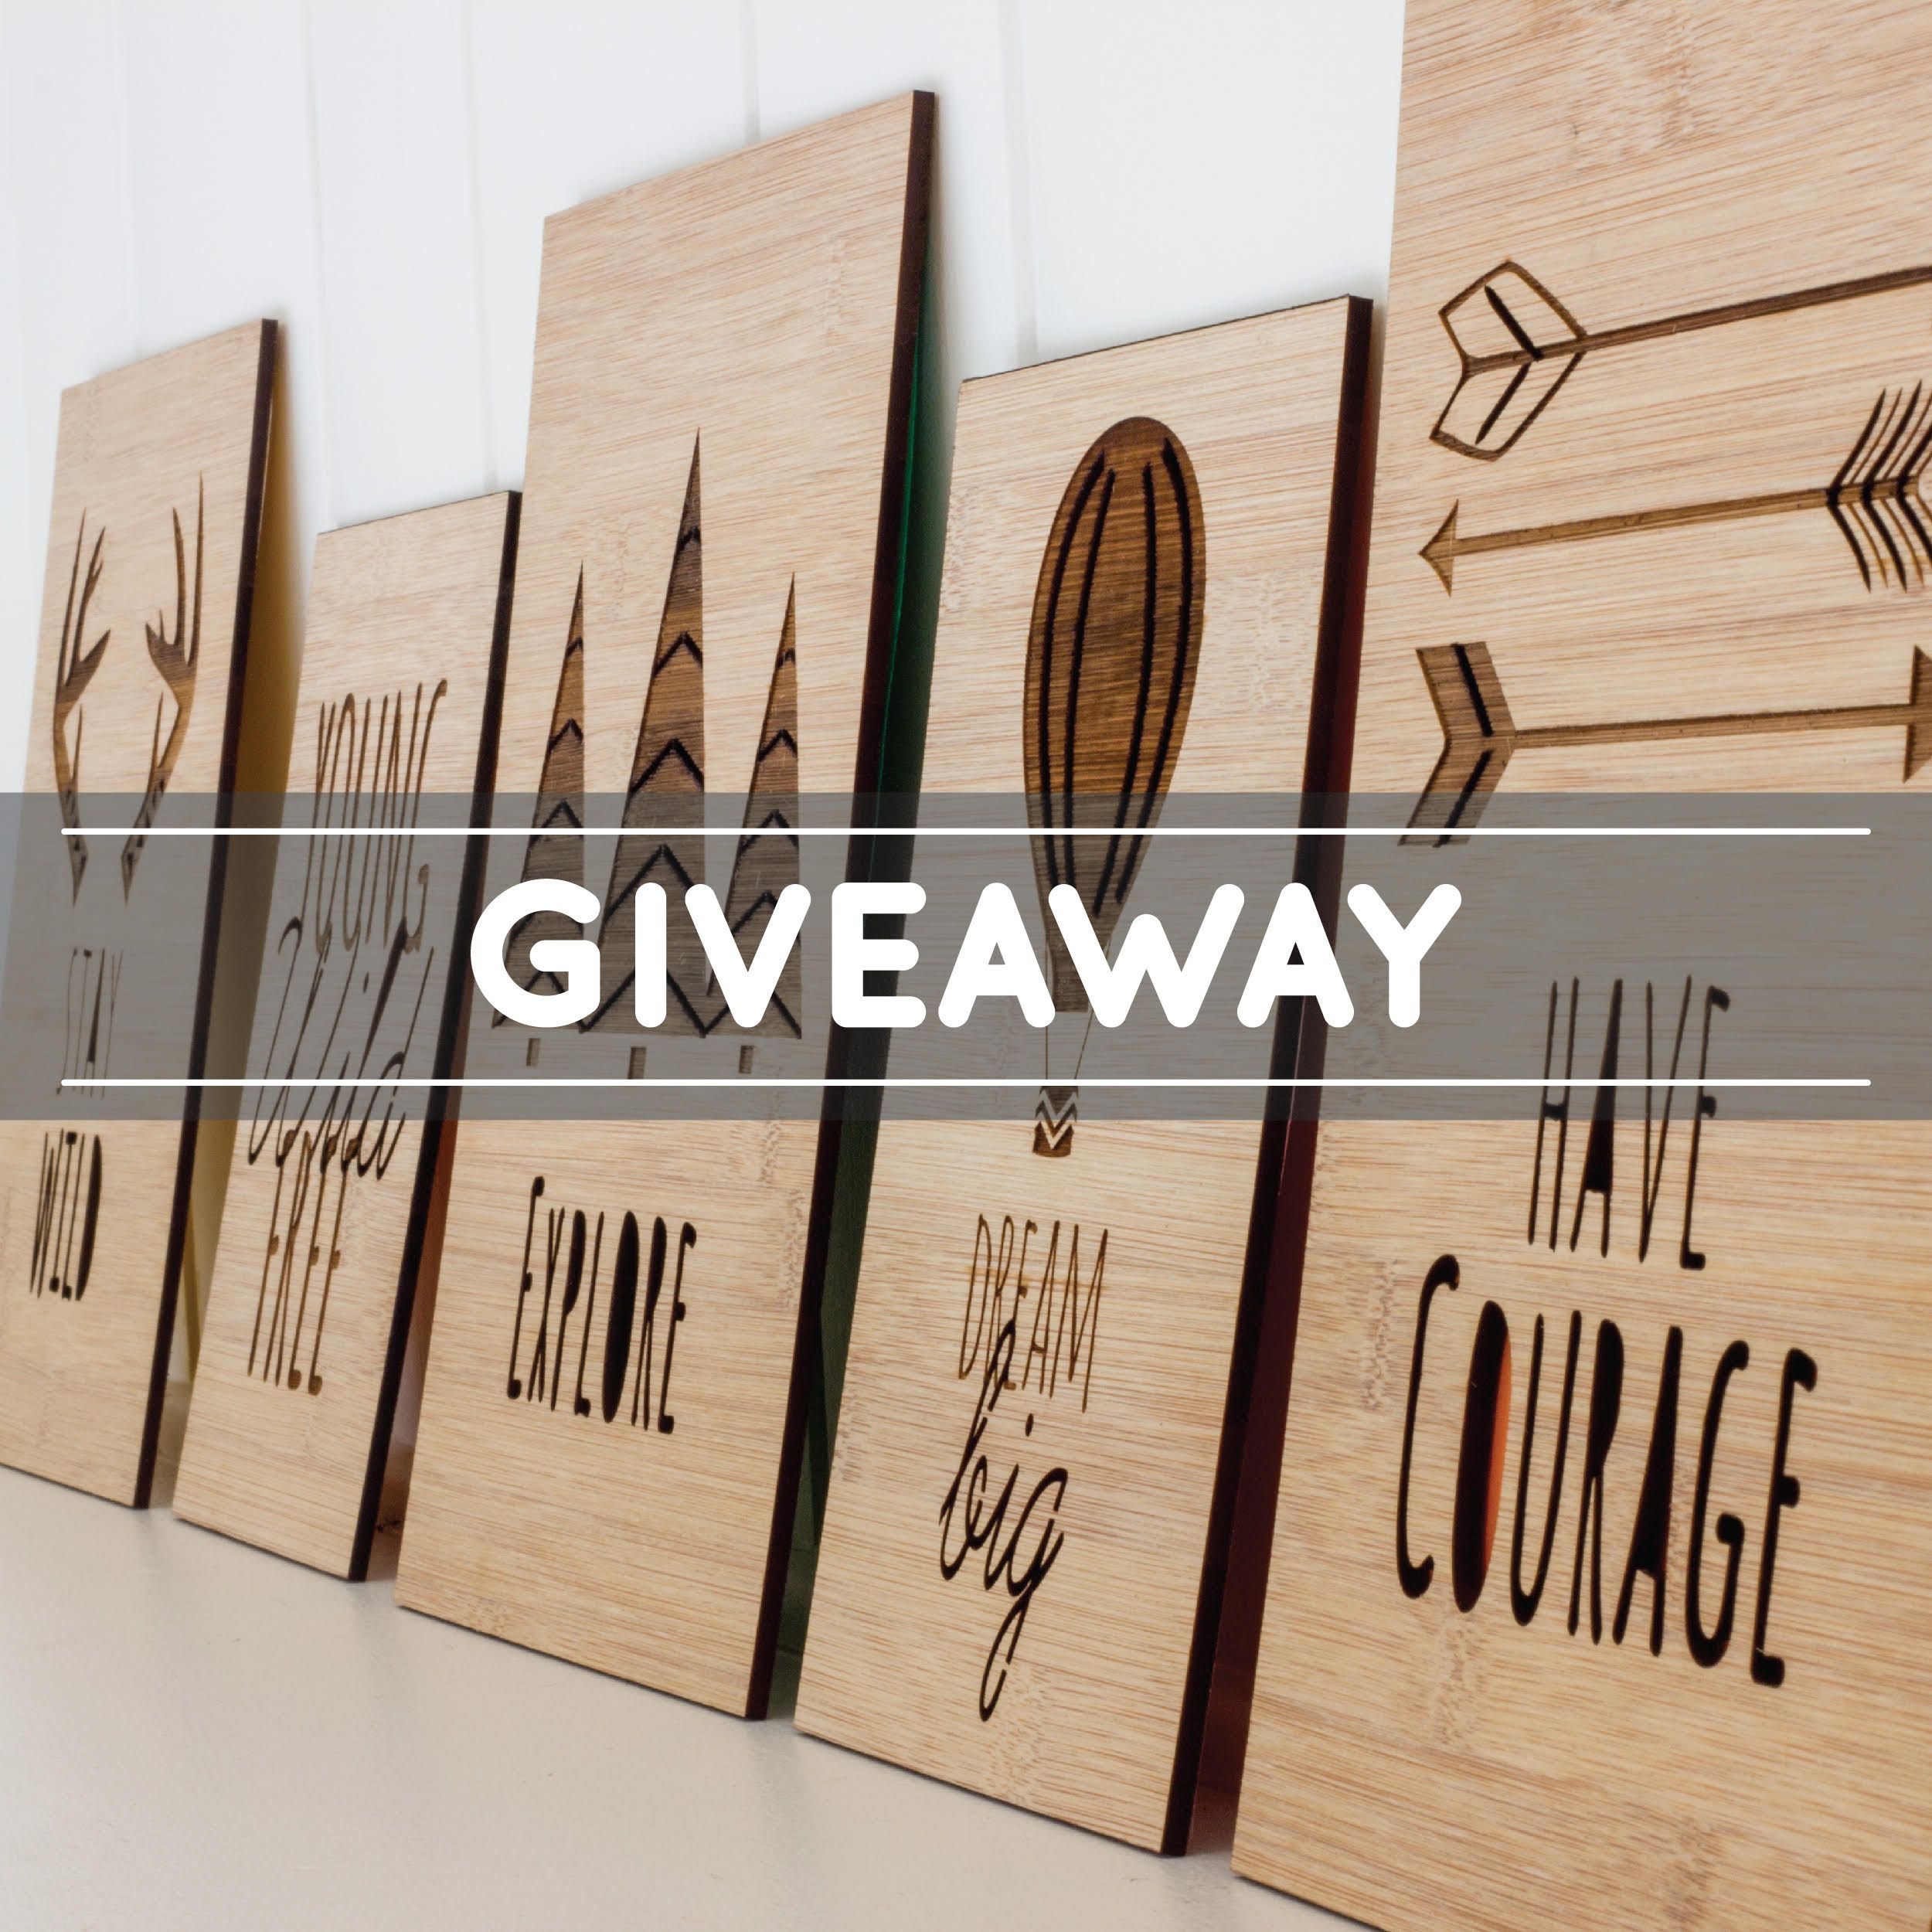 We are giving away one of our bamboo prints to one of our Instagram followers! Winner will select the print of their choice.  To enter: 1. Follow us on Instagram if you haven't already. 2. Comment on the post and tag 3 friends. That's it! We will pick a winner on August 31st at 6:00pm and will announce it on our Instagram on September 1st. You will be given one additional entry for every social media account you follow of ours. Facebook.com/shopduloro Pinterest.com/duloro Twitter.com/duloro…